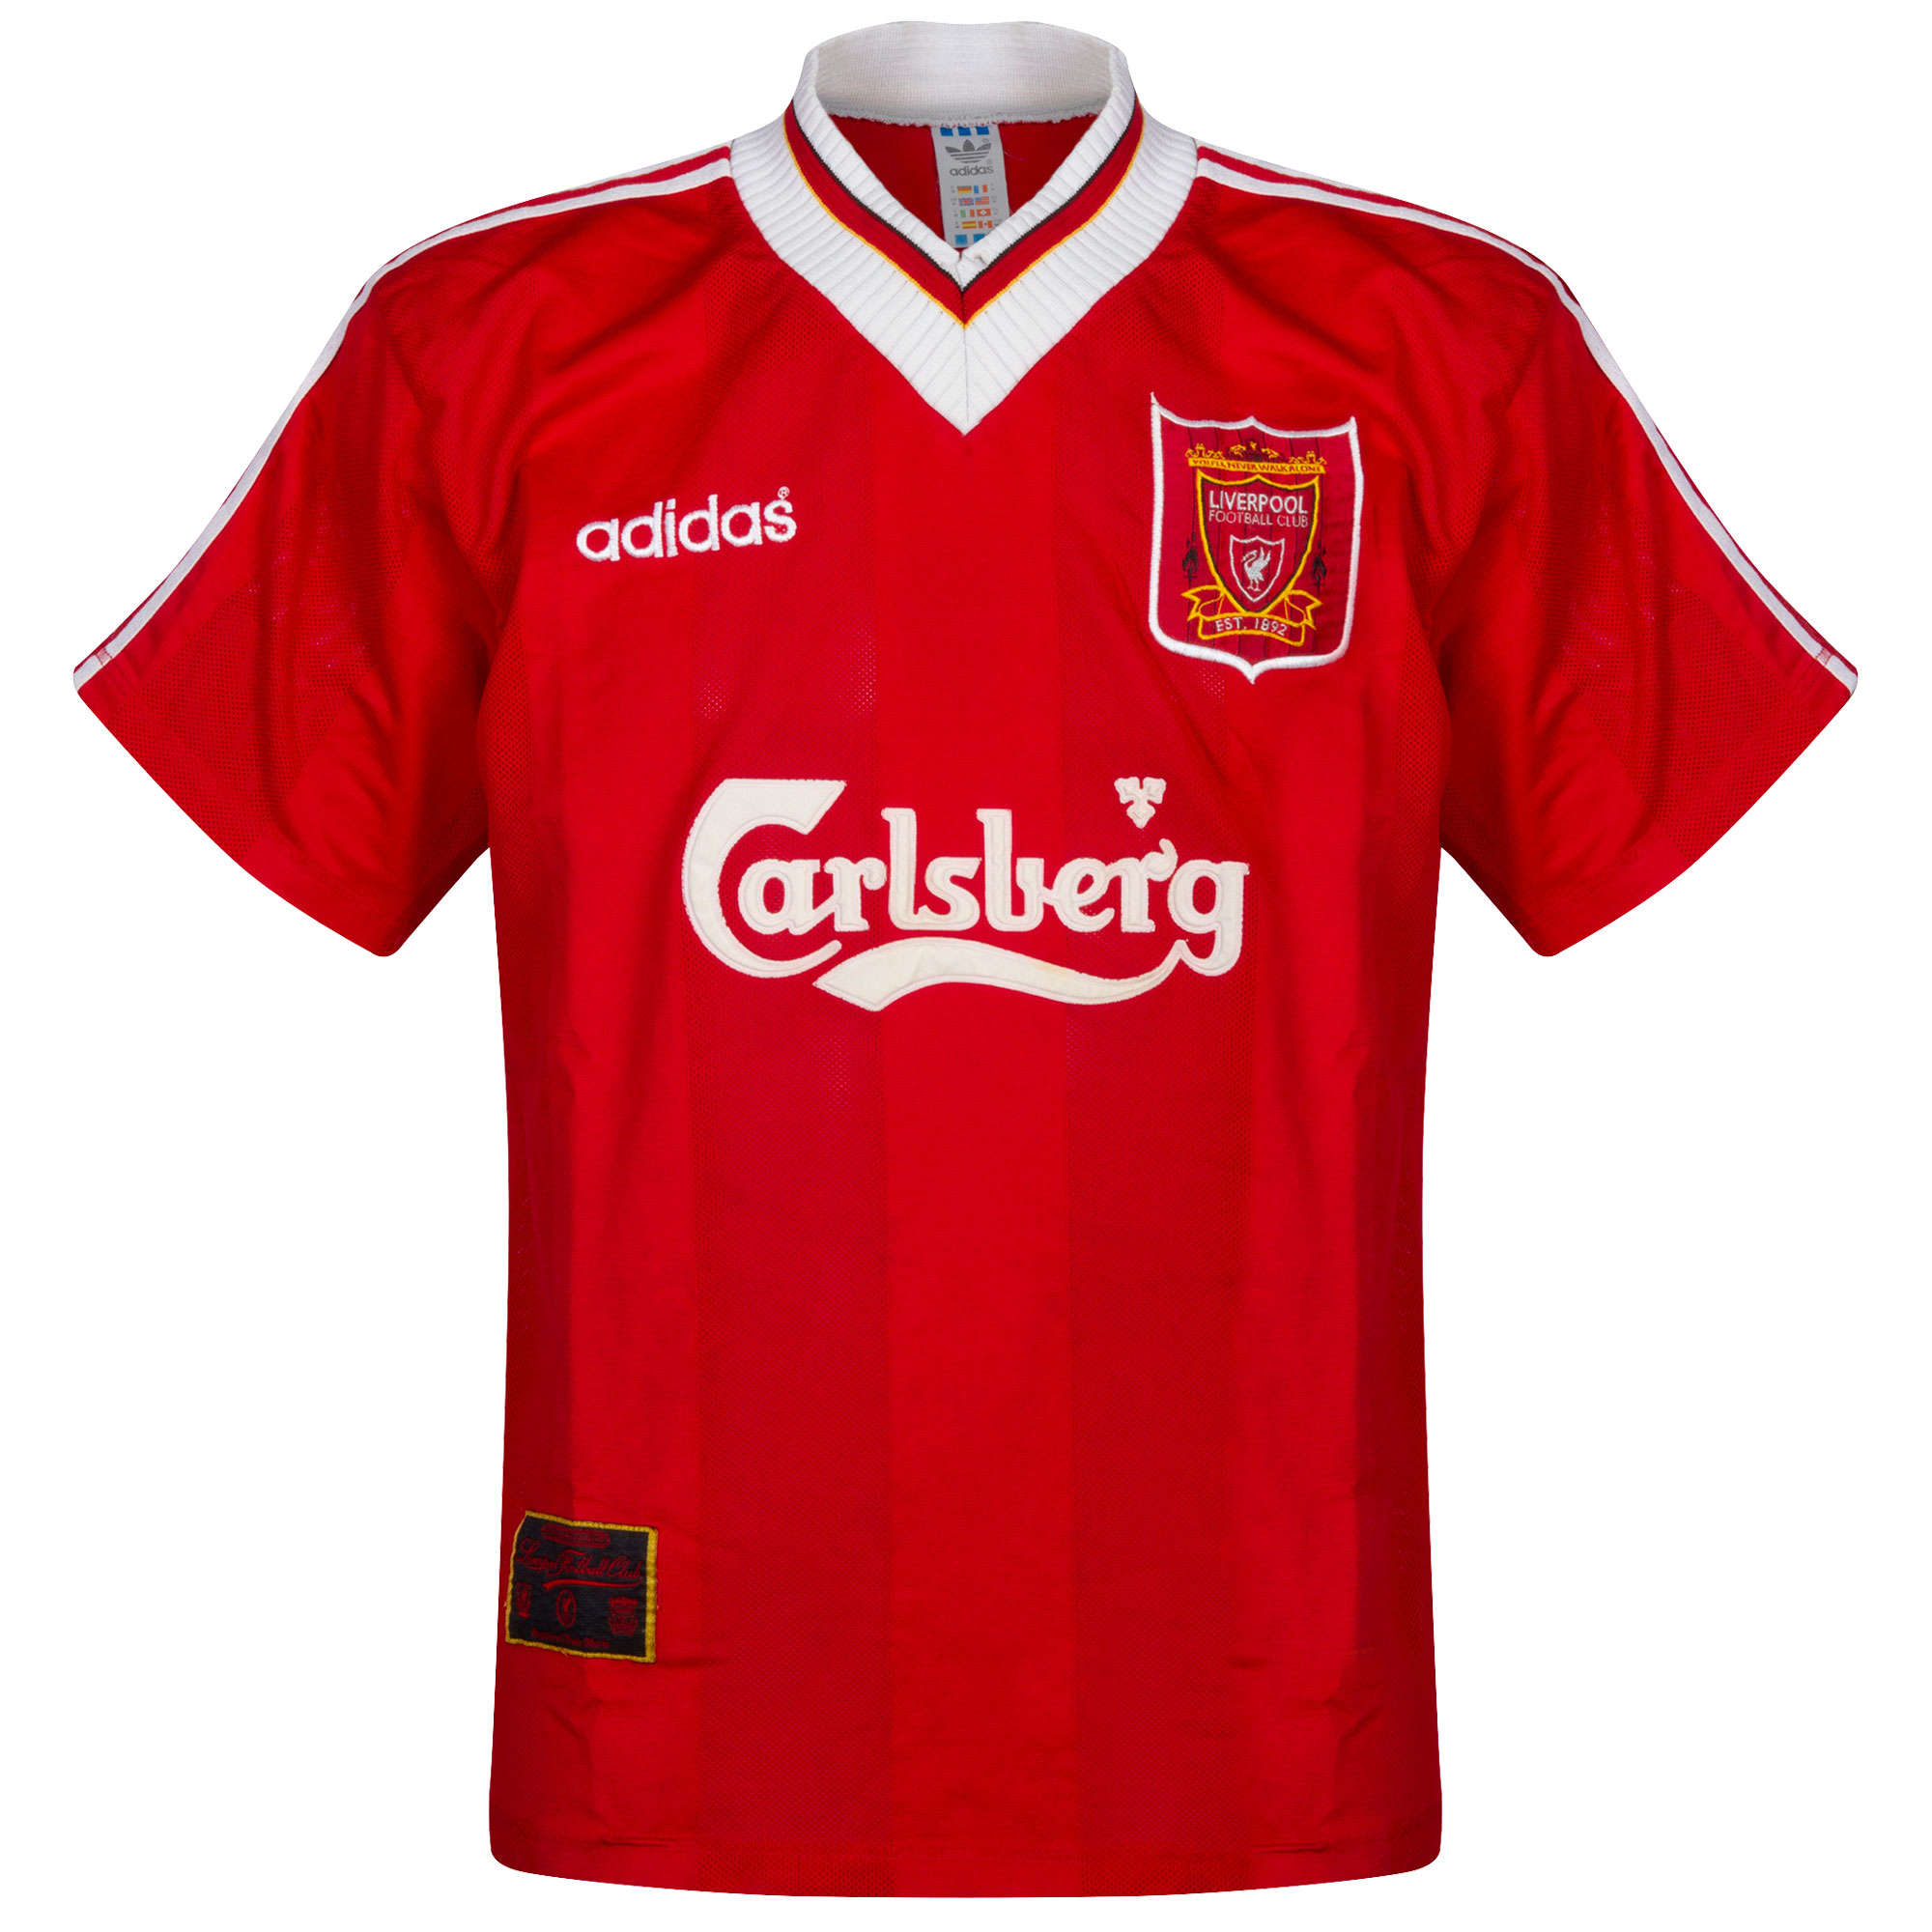 adidas Liverpool 1995-1996 Home Shirt USED Condition (Damaged)